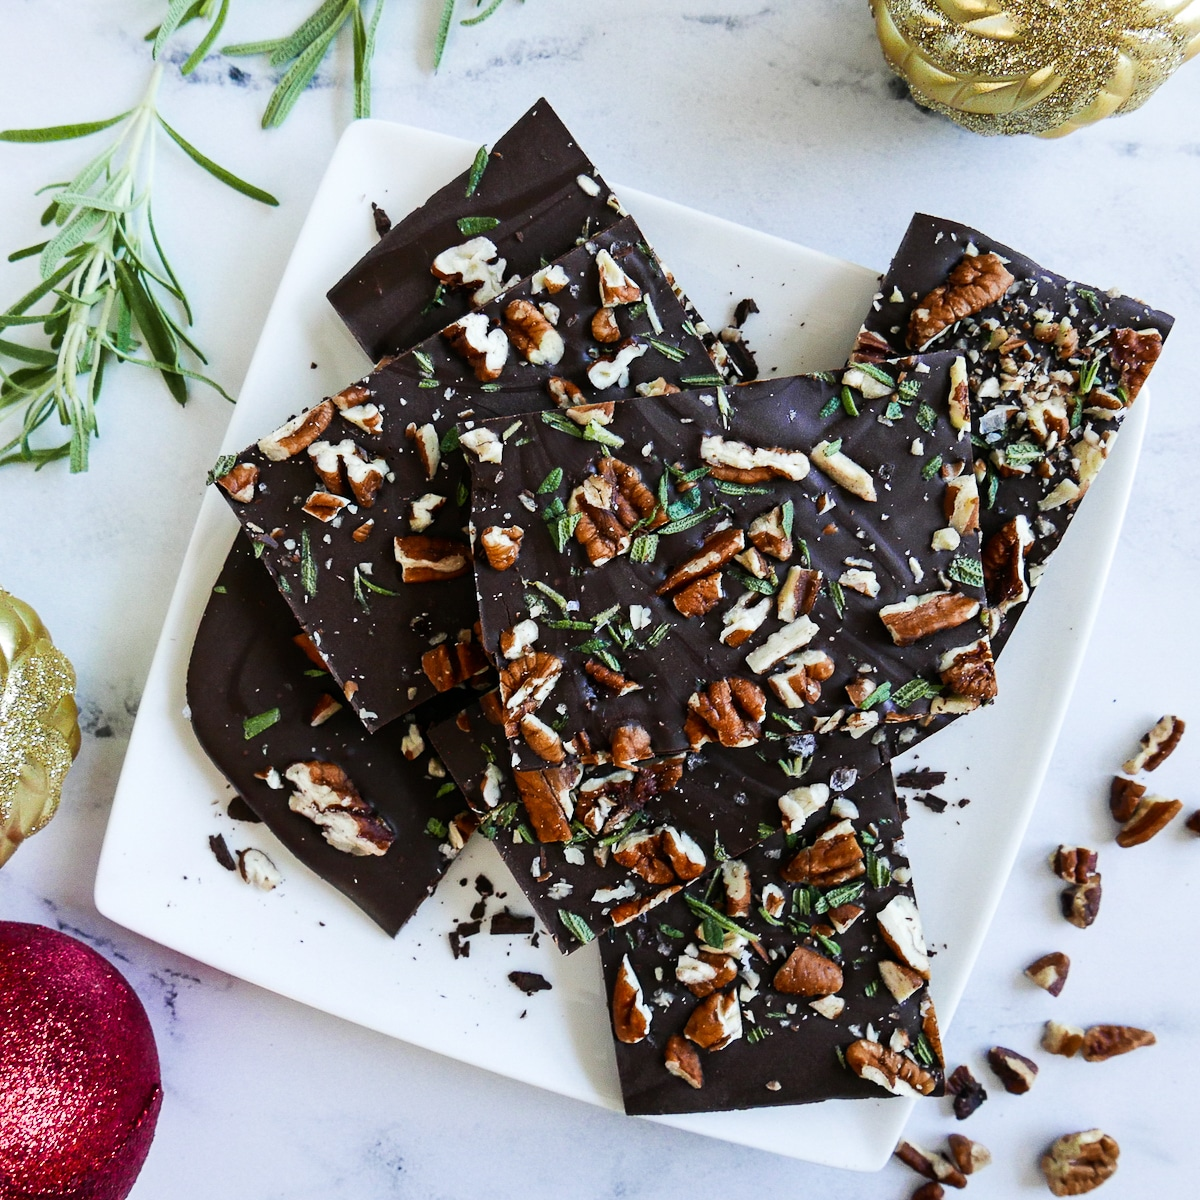 chocolate pecan rosemary bark cut into squares and arranged on a white plate with chopped pecans and rosemary next to plate